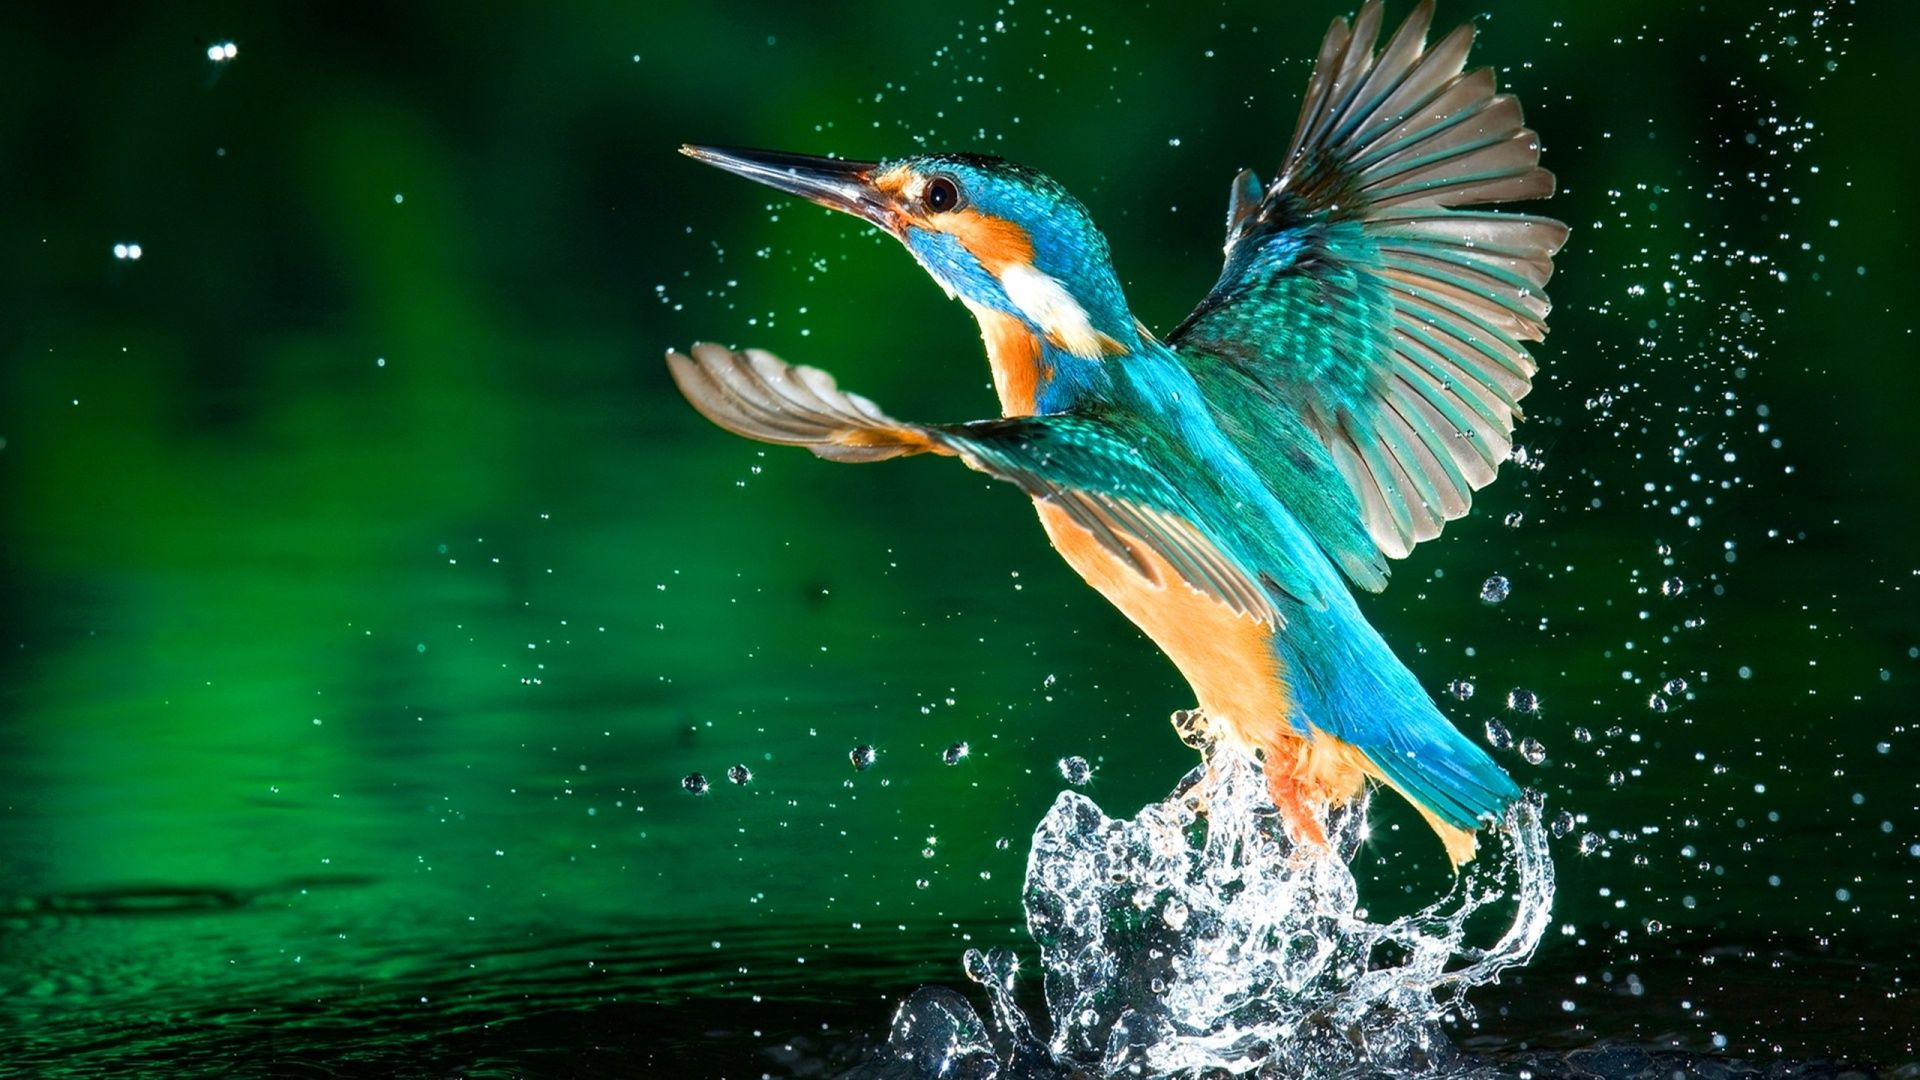 kingfisher bird hd wallpapers free download 1080p | birds